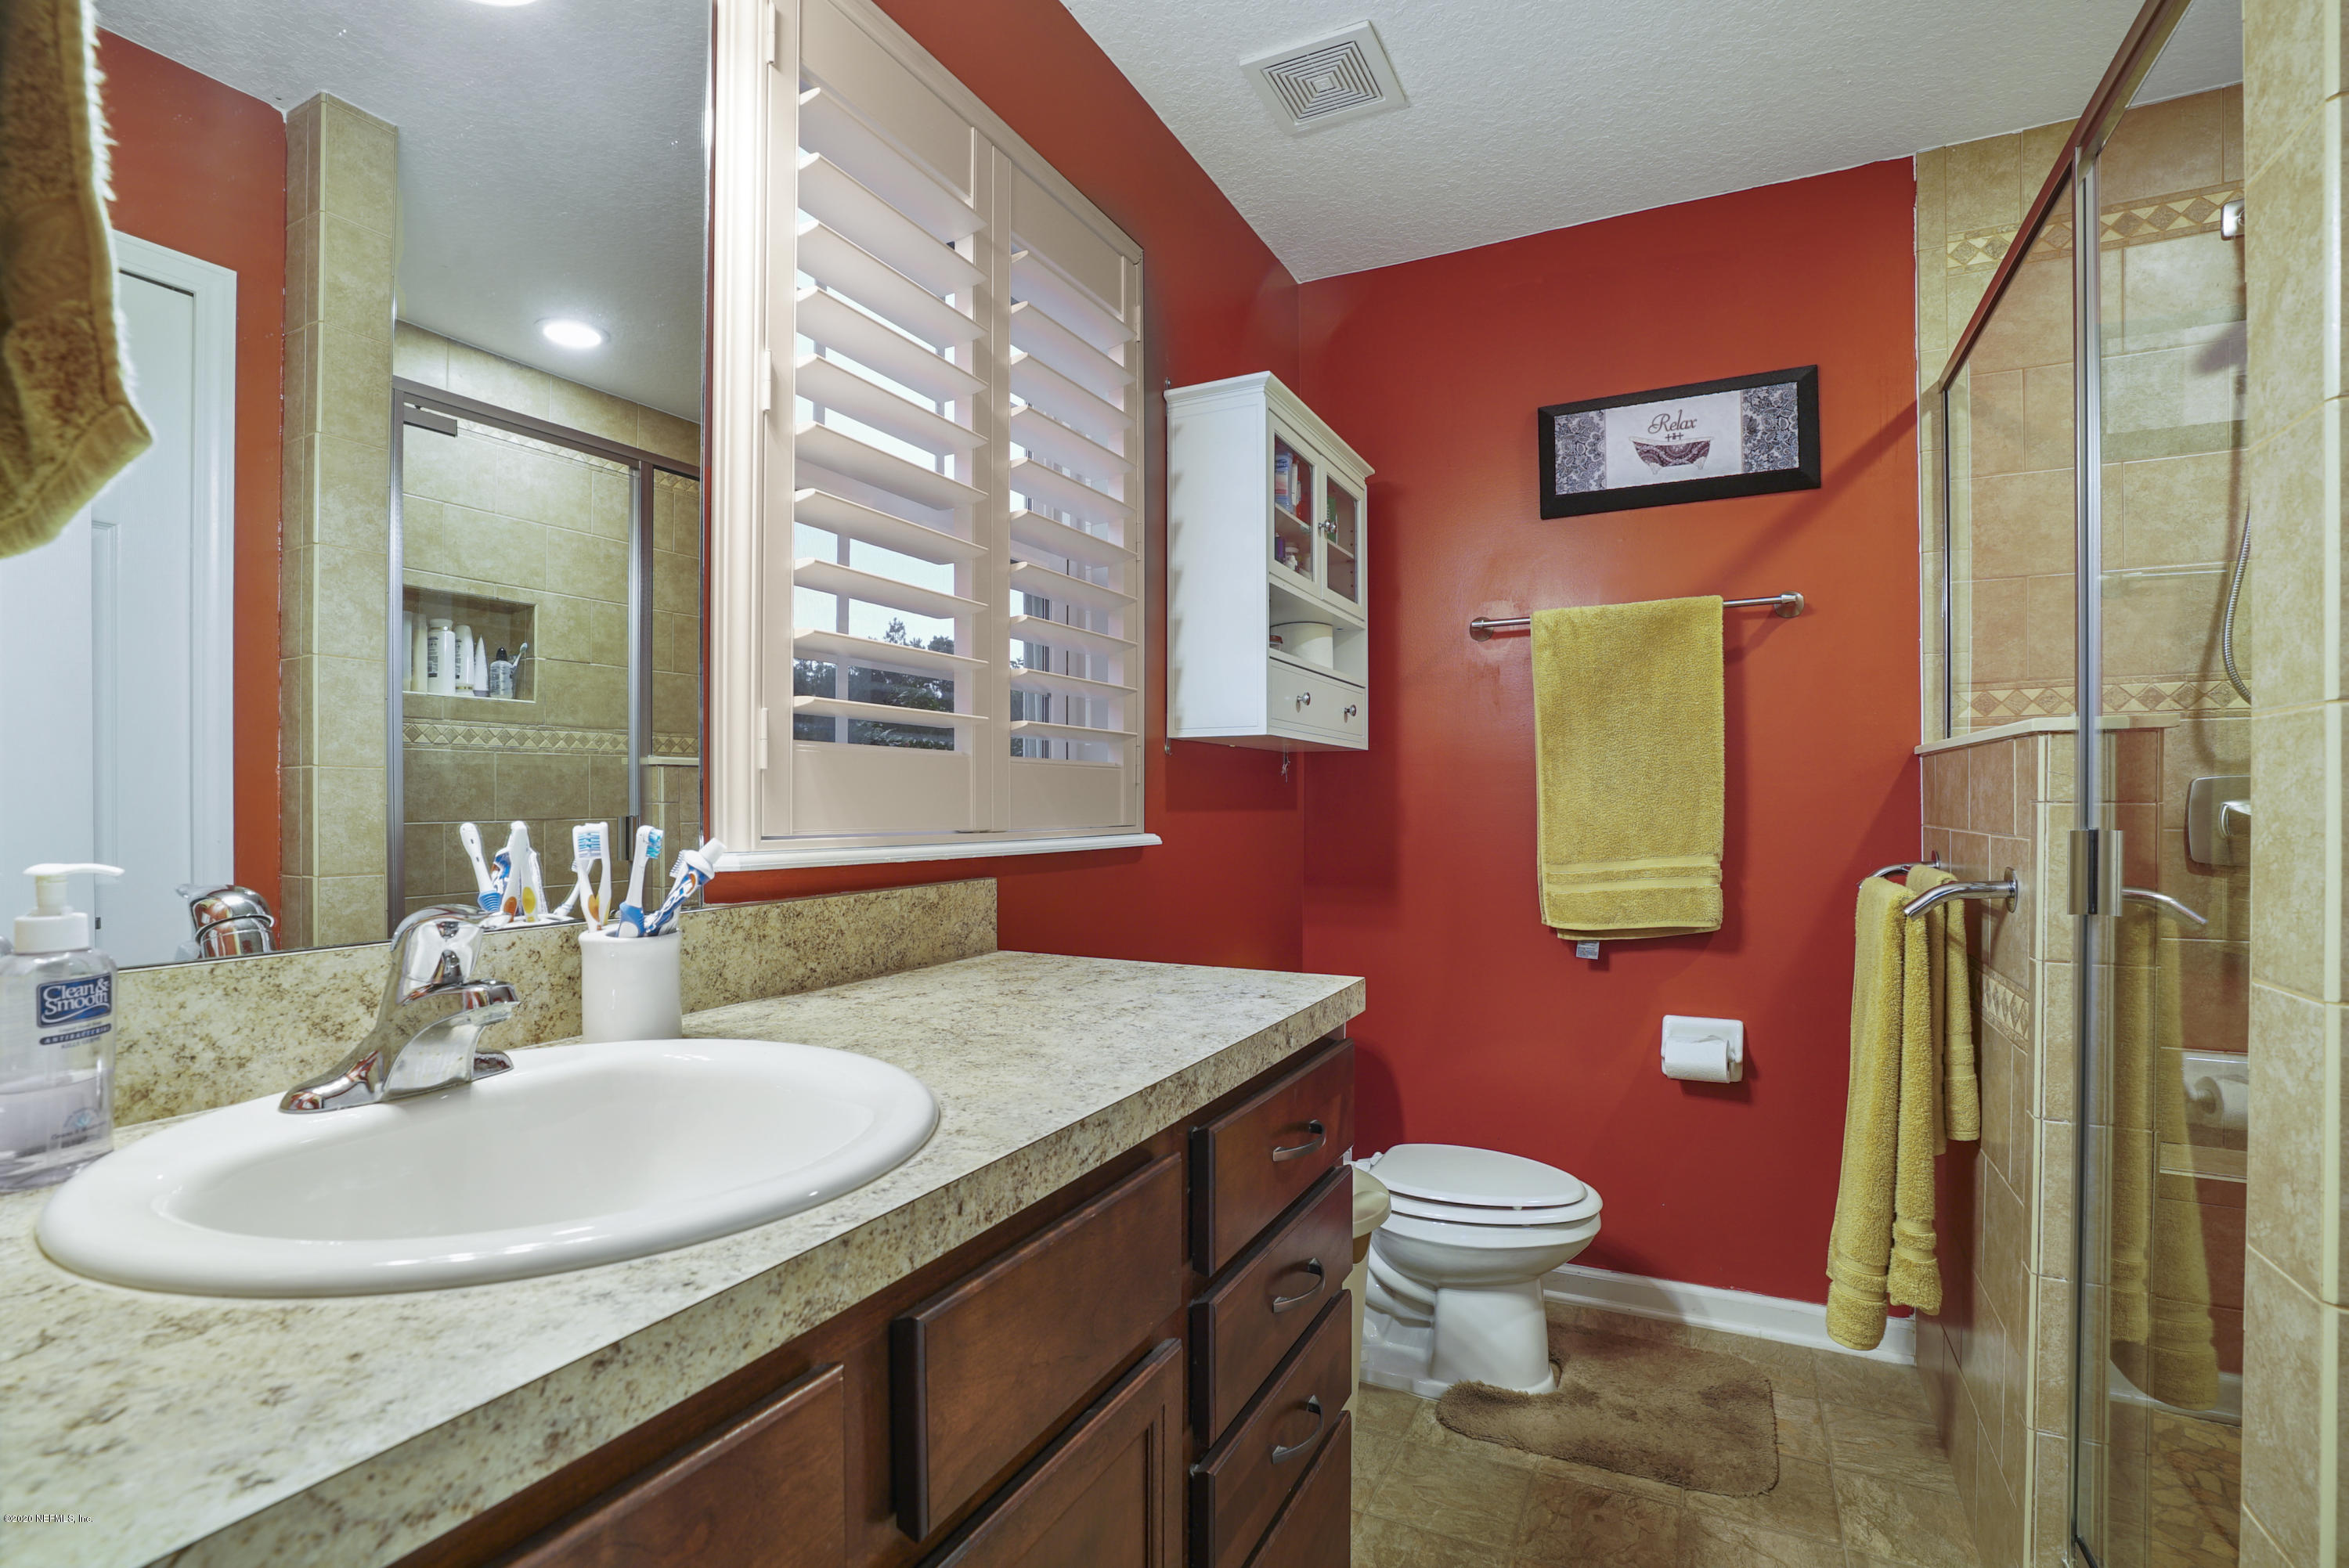 144 NEW ENGLAND, ELKTON, FLORIDA 32033, 4 Bedrooms Bedrooms, ,3 BathroomsBathrooms,Residential,For sale,NEW ENGLAND,1080124